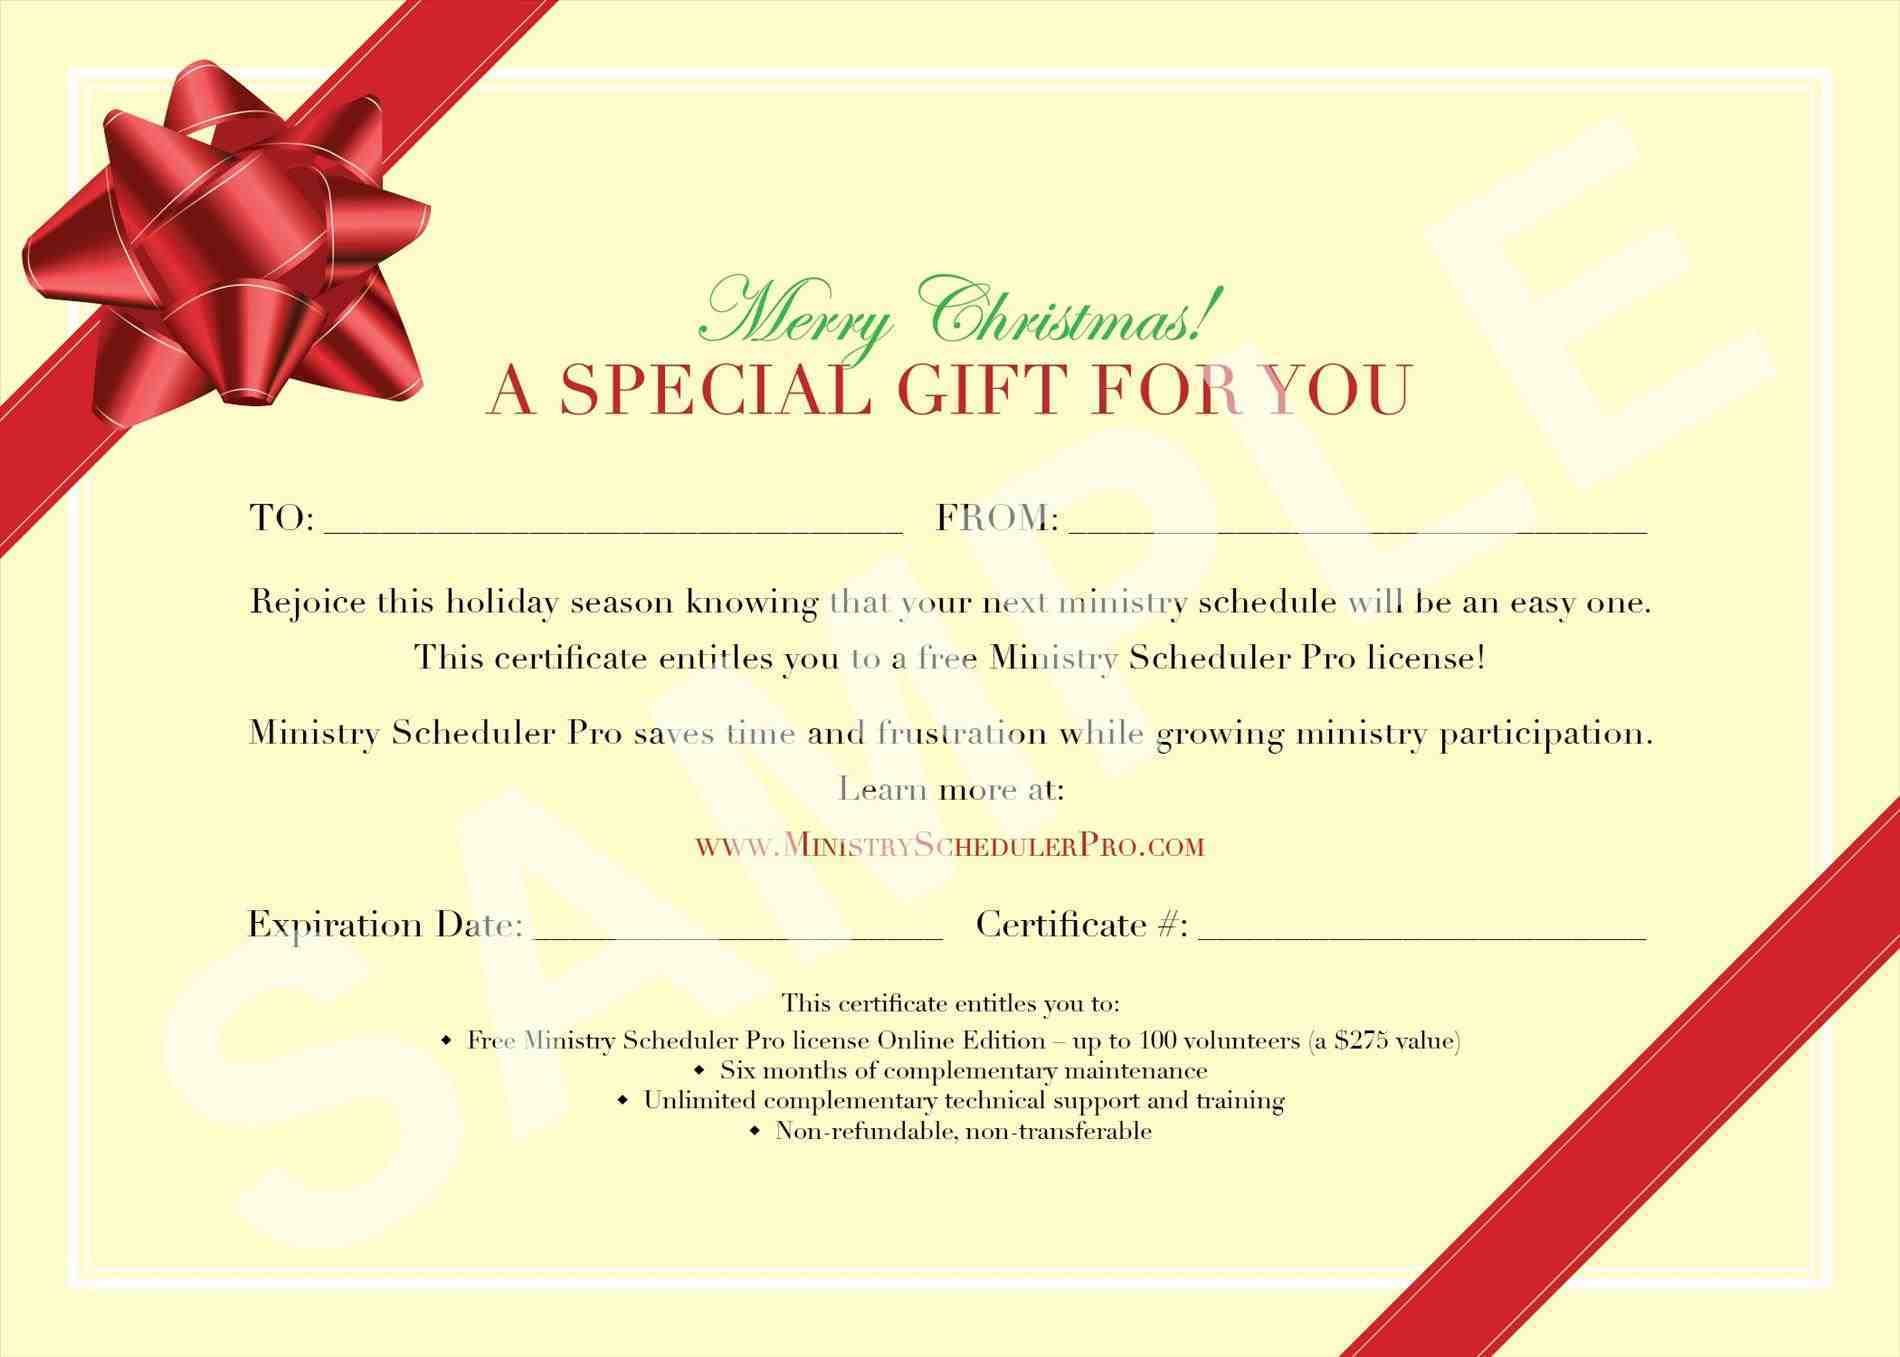 gift certificate templates gift certificates certificate templates gifts make your own free ticket template word make homemade gift certificate templates - Make Your Own Gift Certificate Template